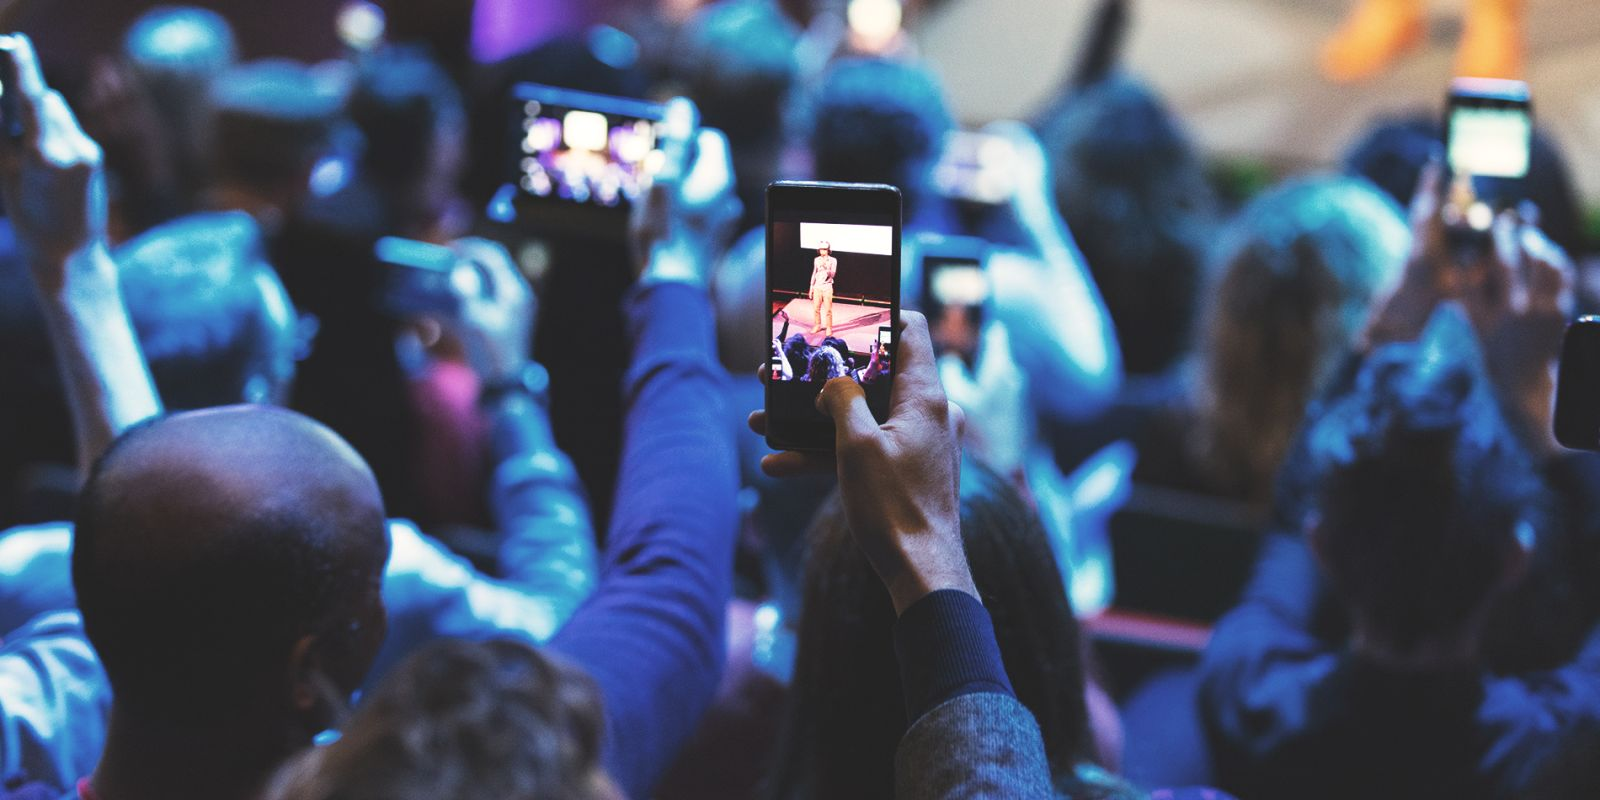 A picture of an audience holding up their phones and filming someone on stage on the promotional video production page.